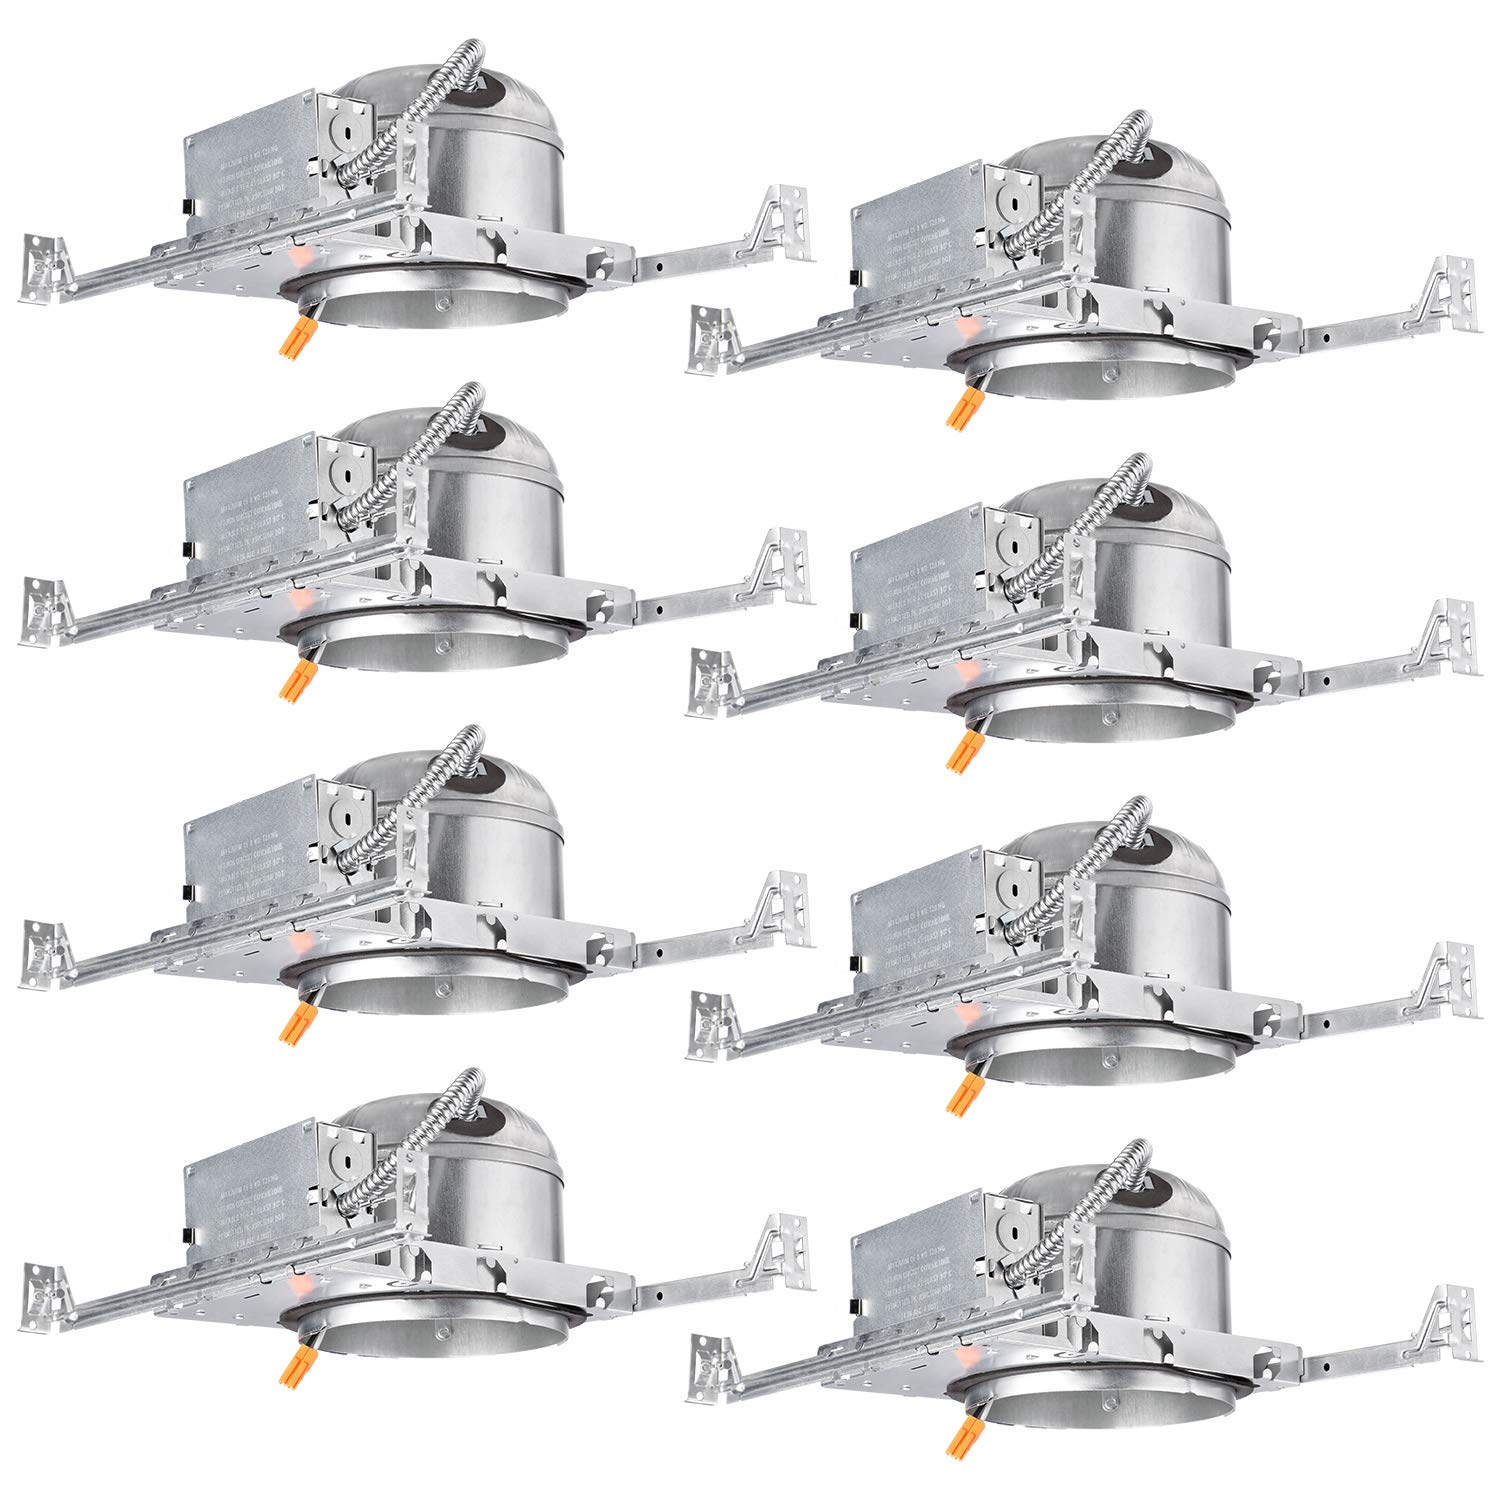 TORCHSTAR 6-Inch Shallow New Construction LED Recessed Housing, IC Rated & Air Tight Ceiling Downlight Can with Junction Box, ETL Listed Slim/Narrow New Construction Housing, TP24 Connector, Pack of 8